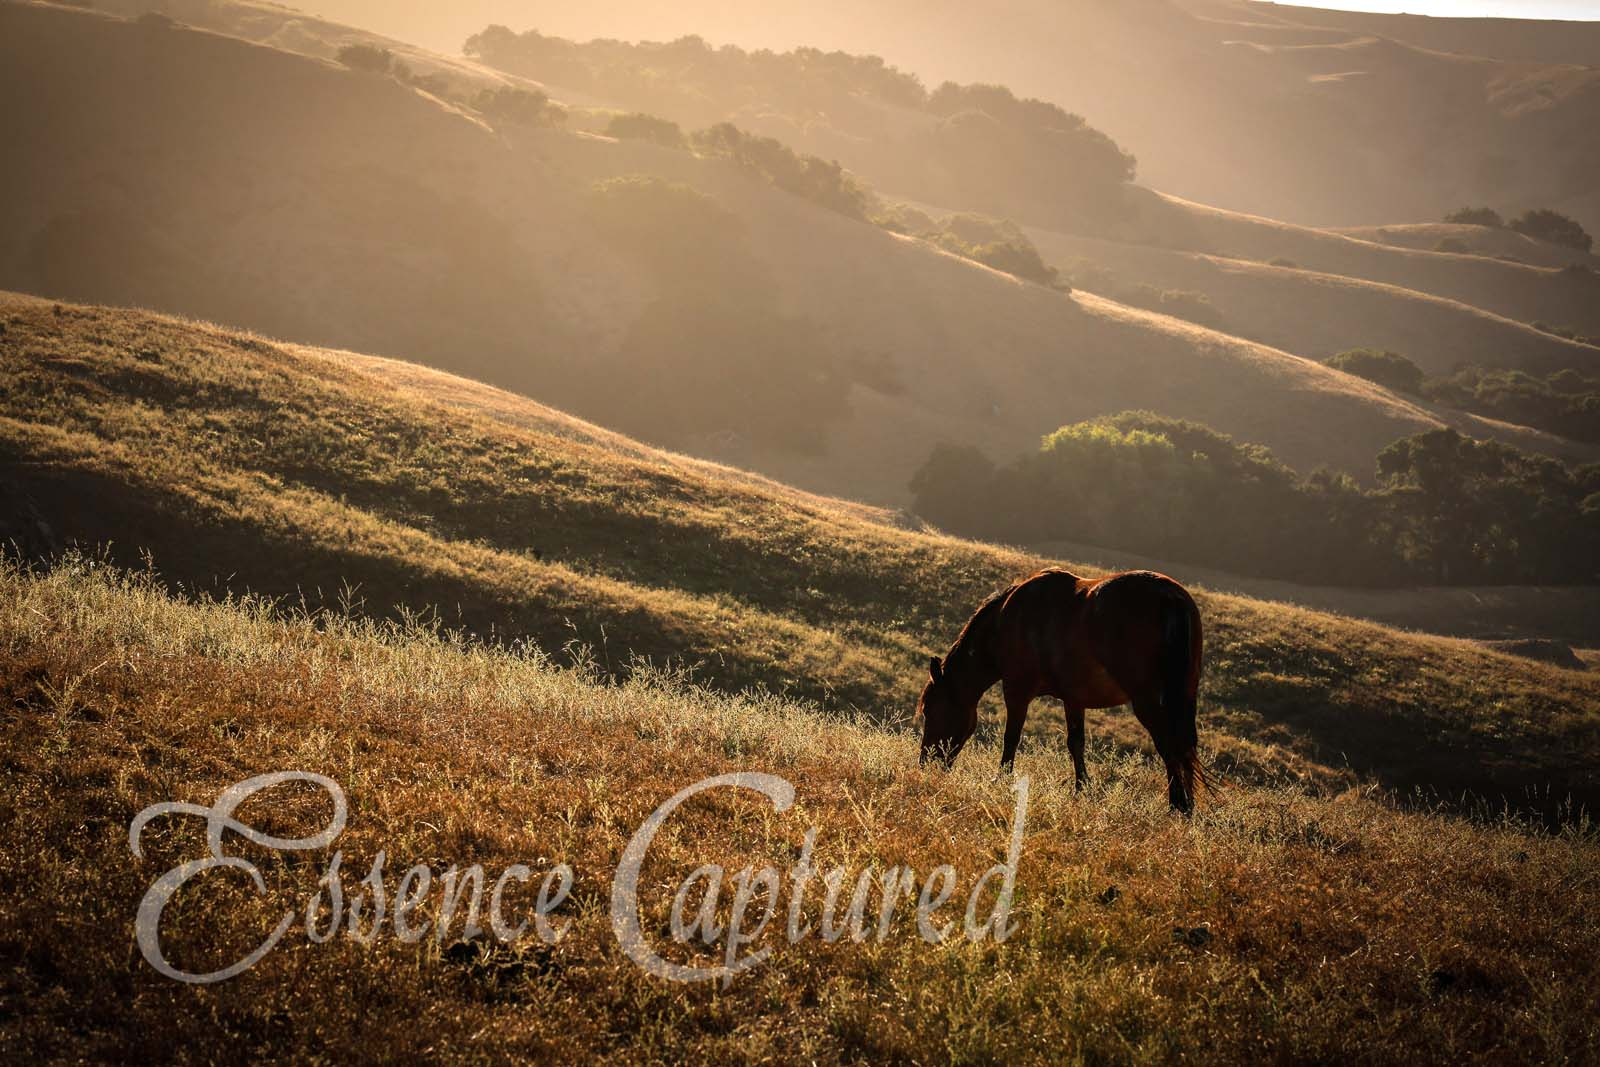 sillhouette of horse grazing on grassy hillside at sunset Prefumo Canyon wild mustangs